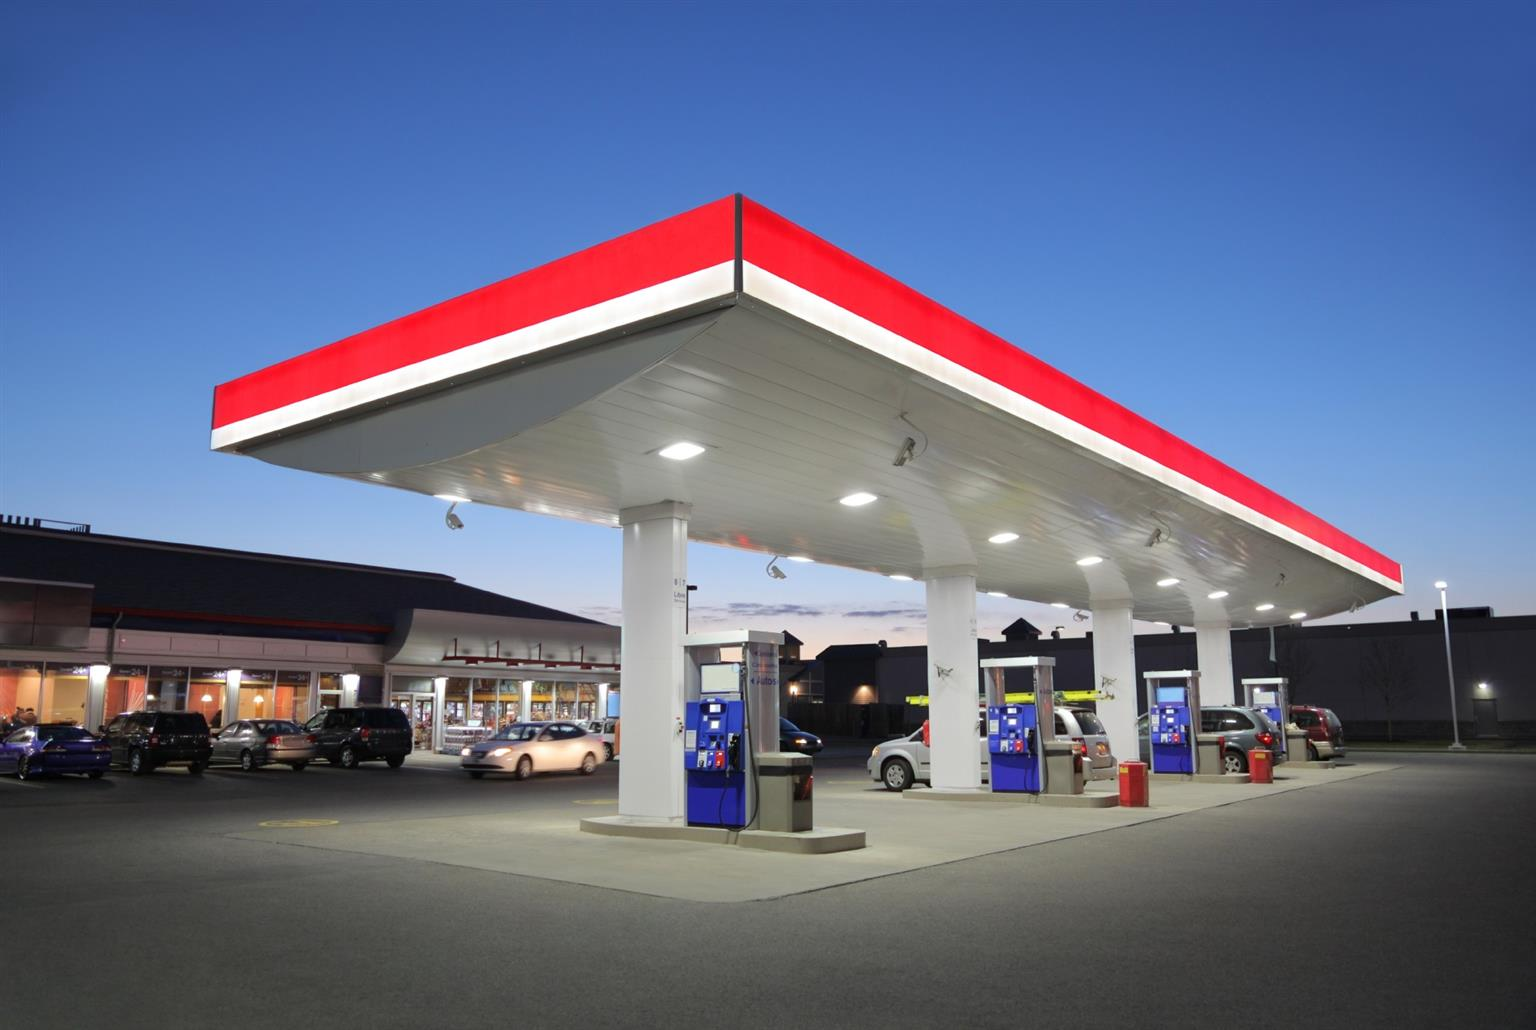 Looking to purchase a FUEL STATION